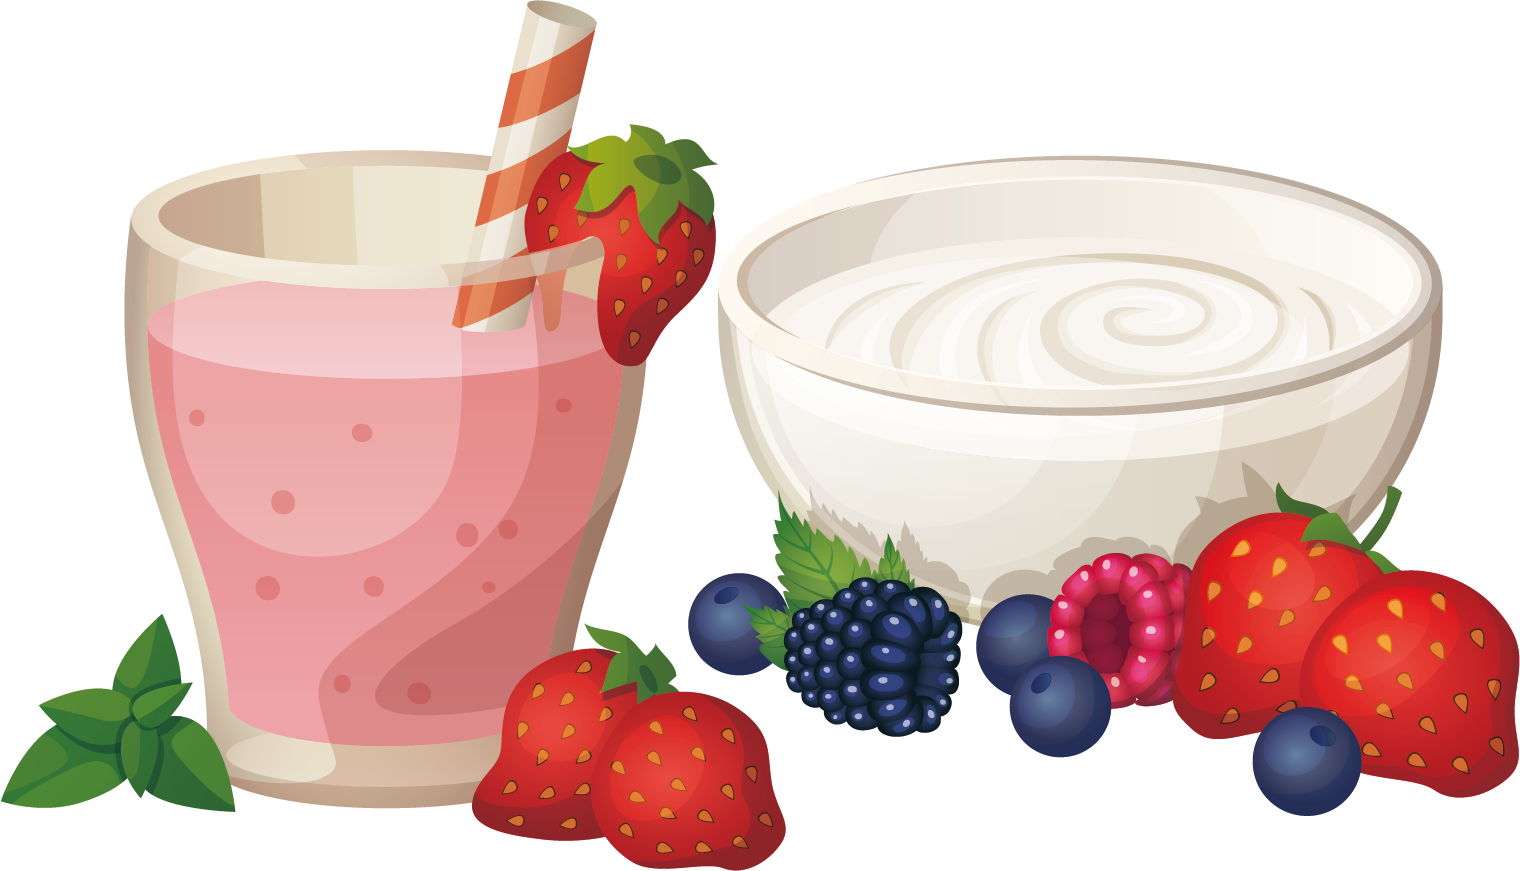 clipart library stock Strawberry yogurt clipart. Milkshake royalty free clip.